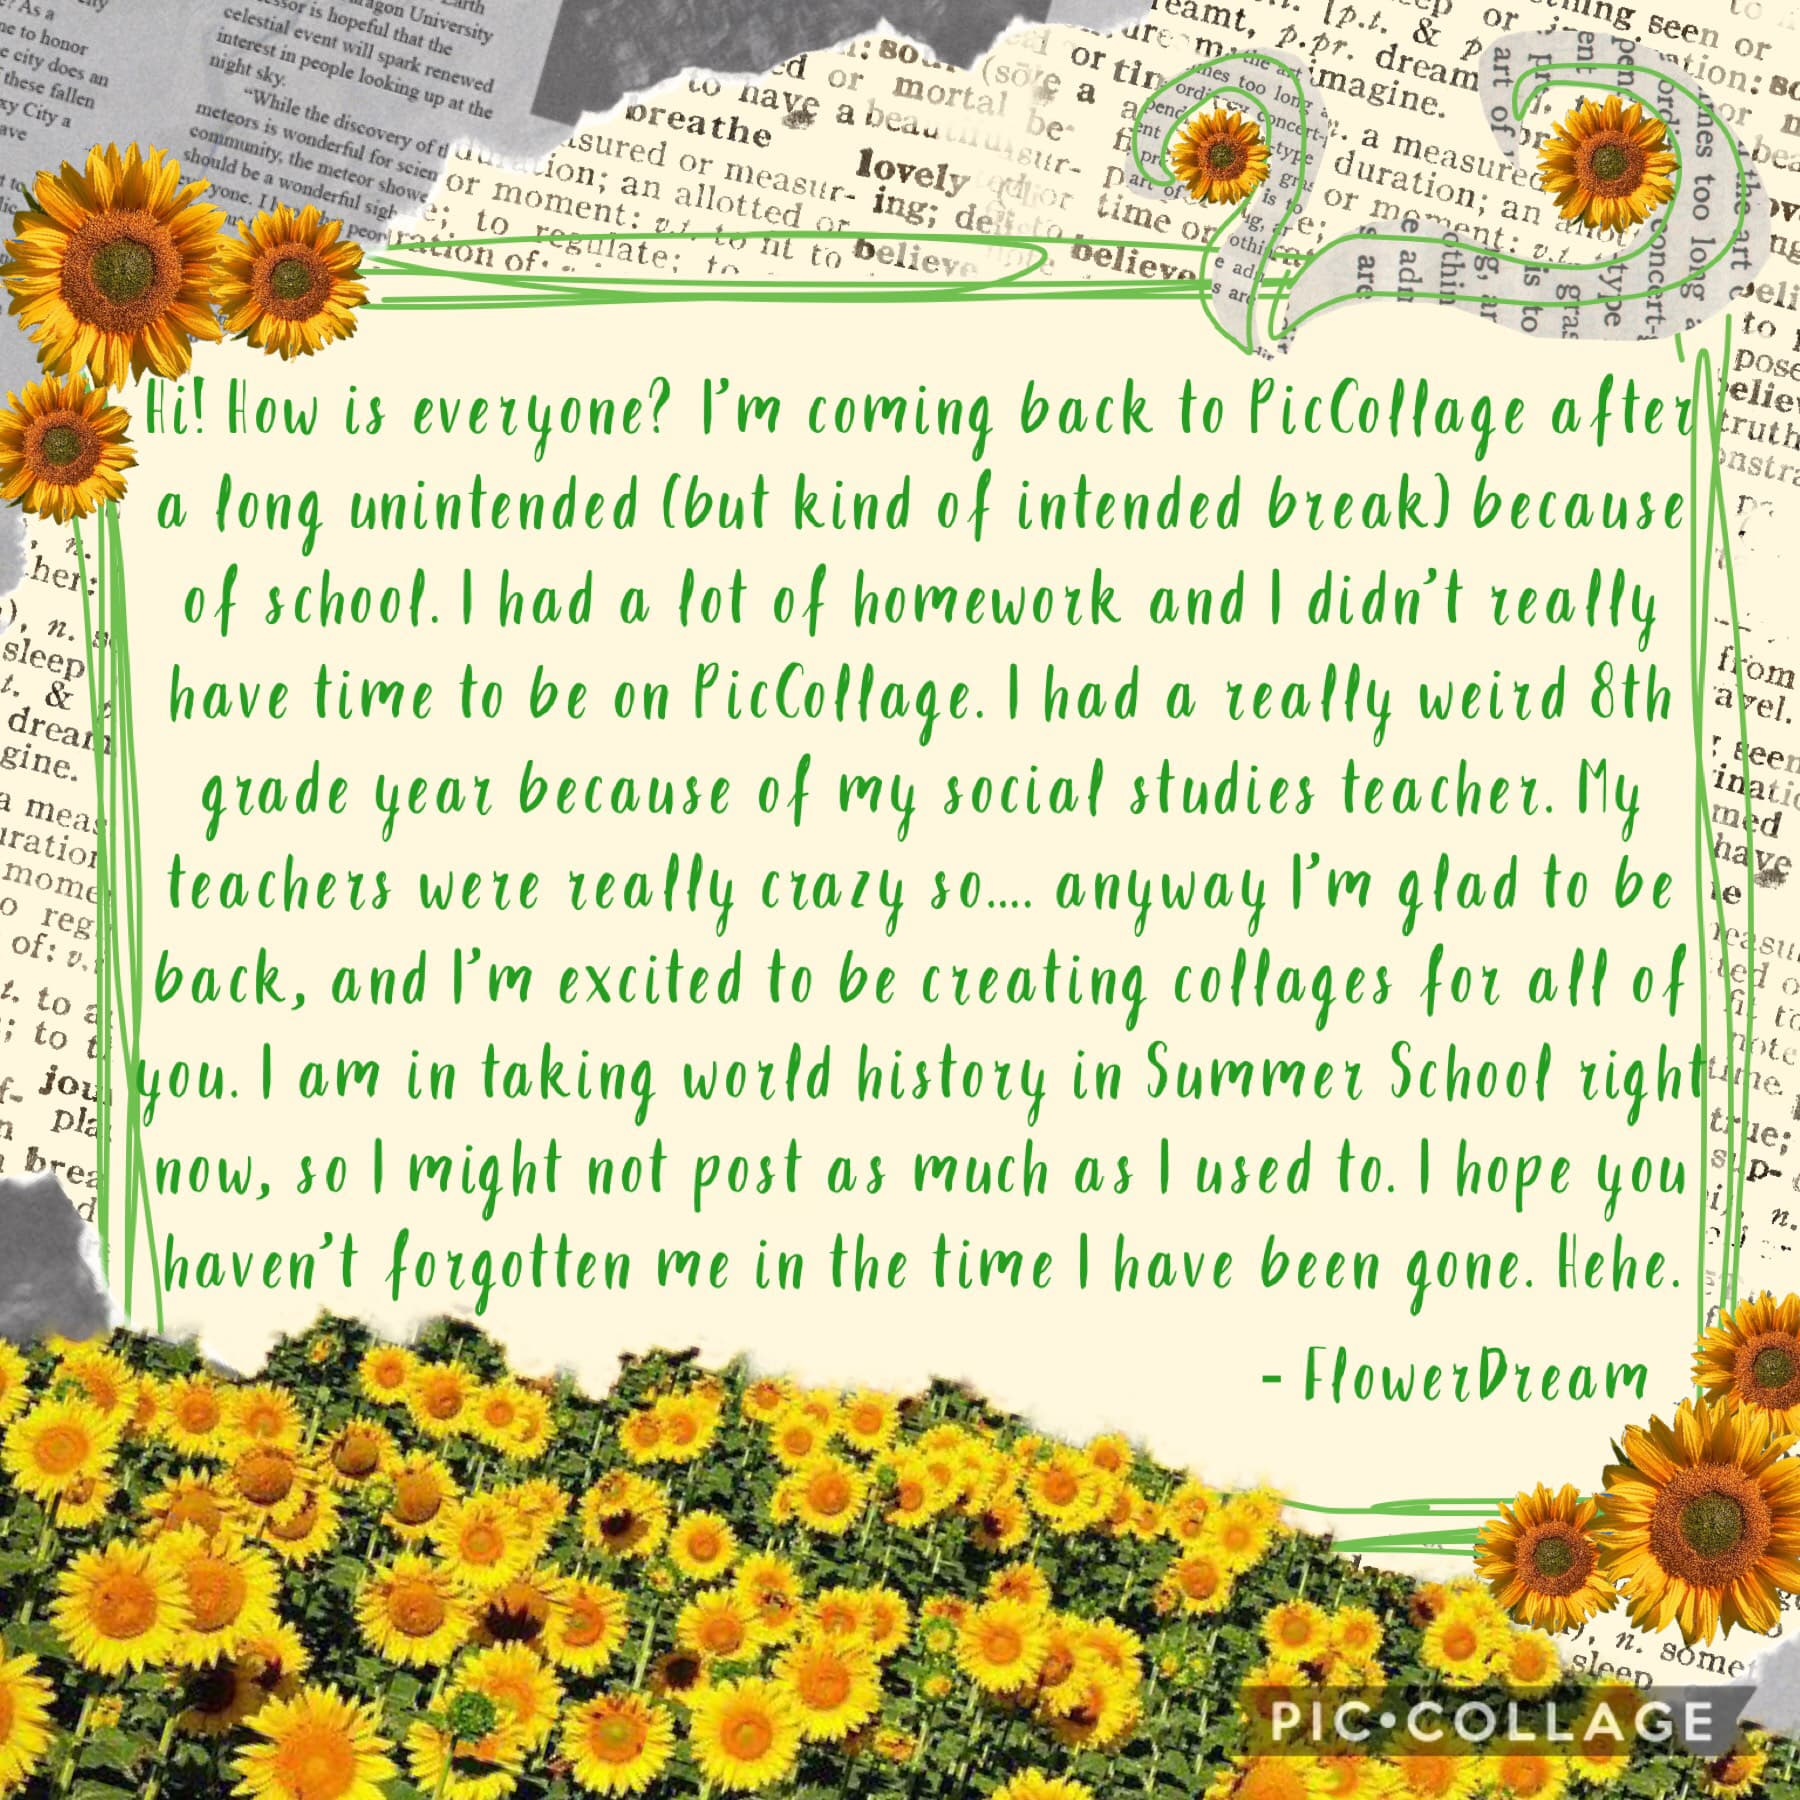 🌻 I'm back! 🌻               💛 Long story short my social studies teacher was very scary, but I miss him because he was a good teacher. He gave me a lot of interesting stories to tell. 💛